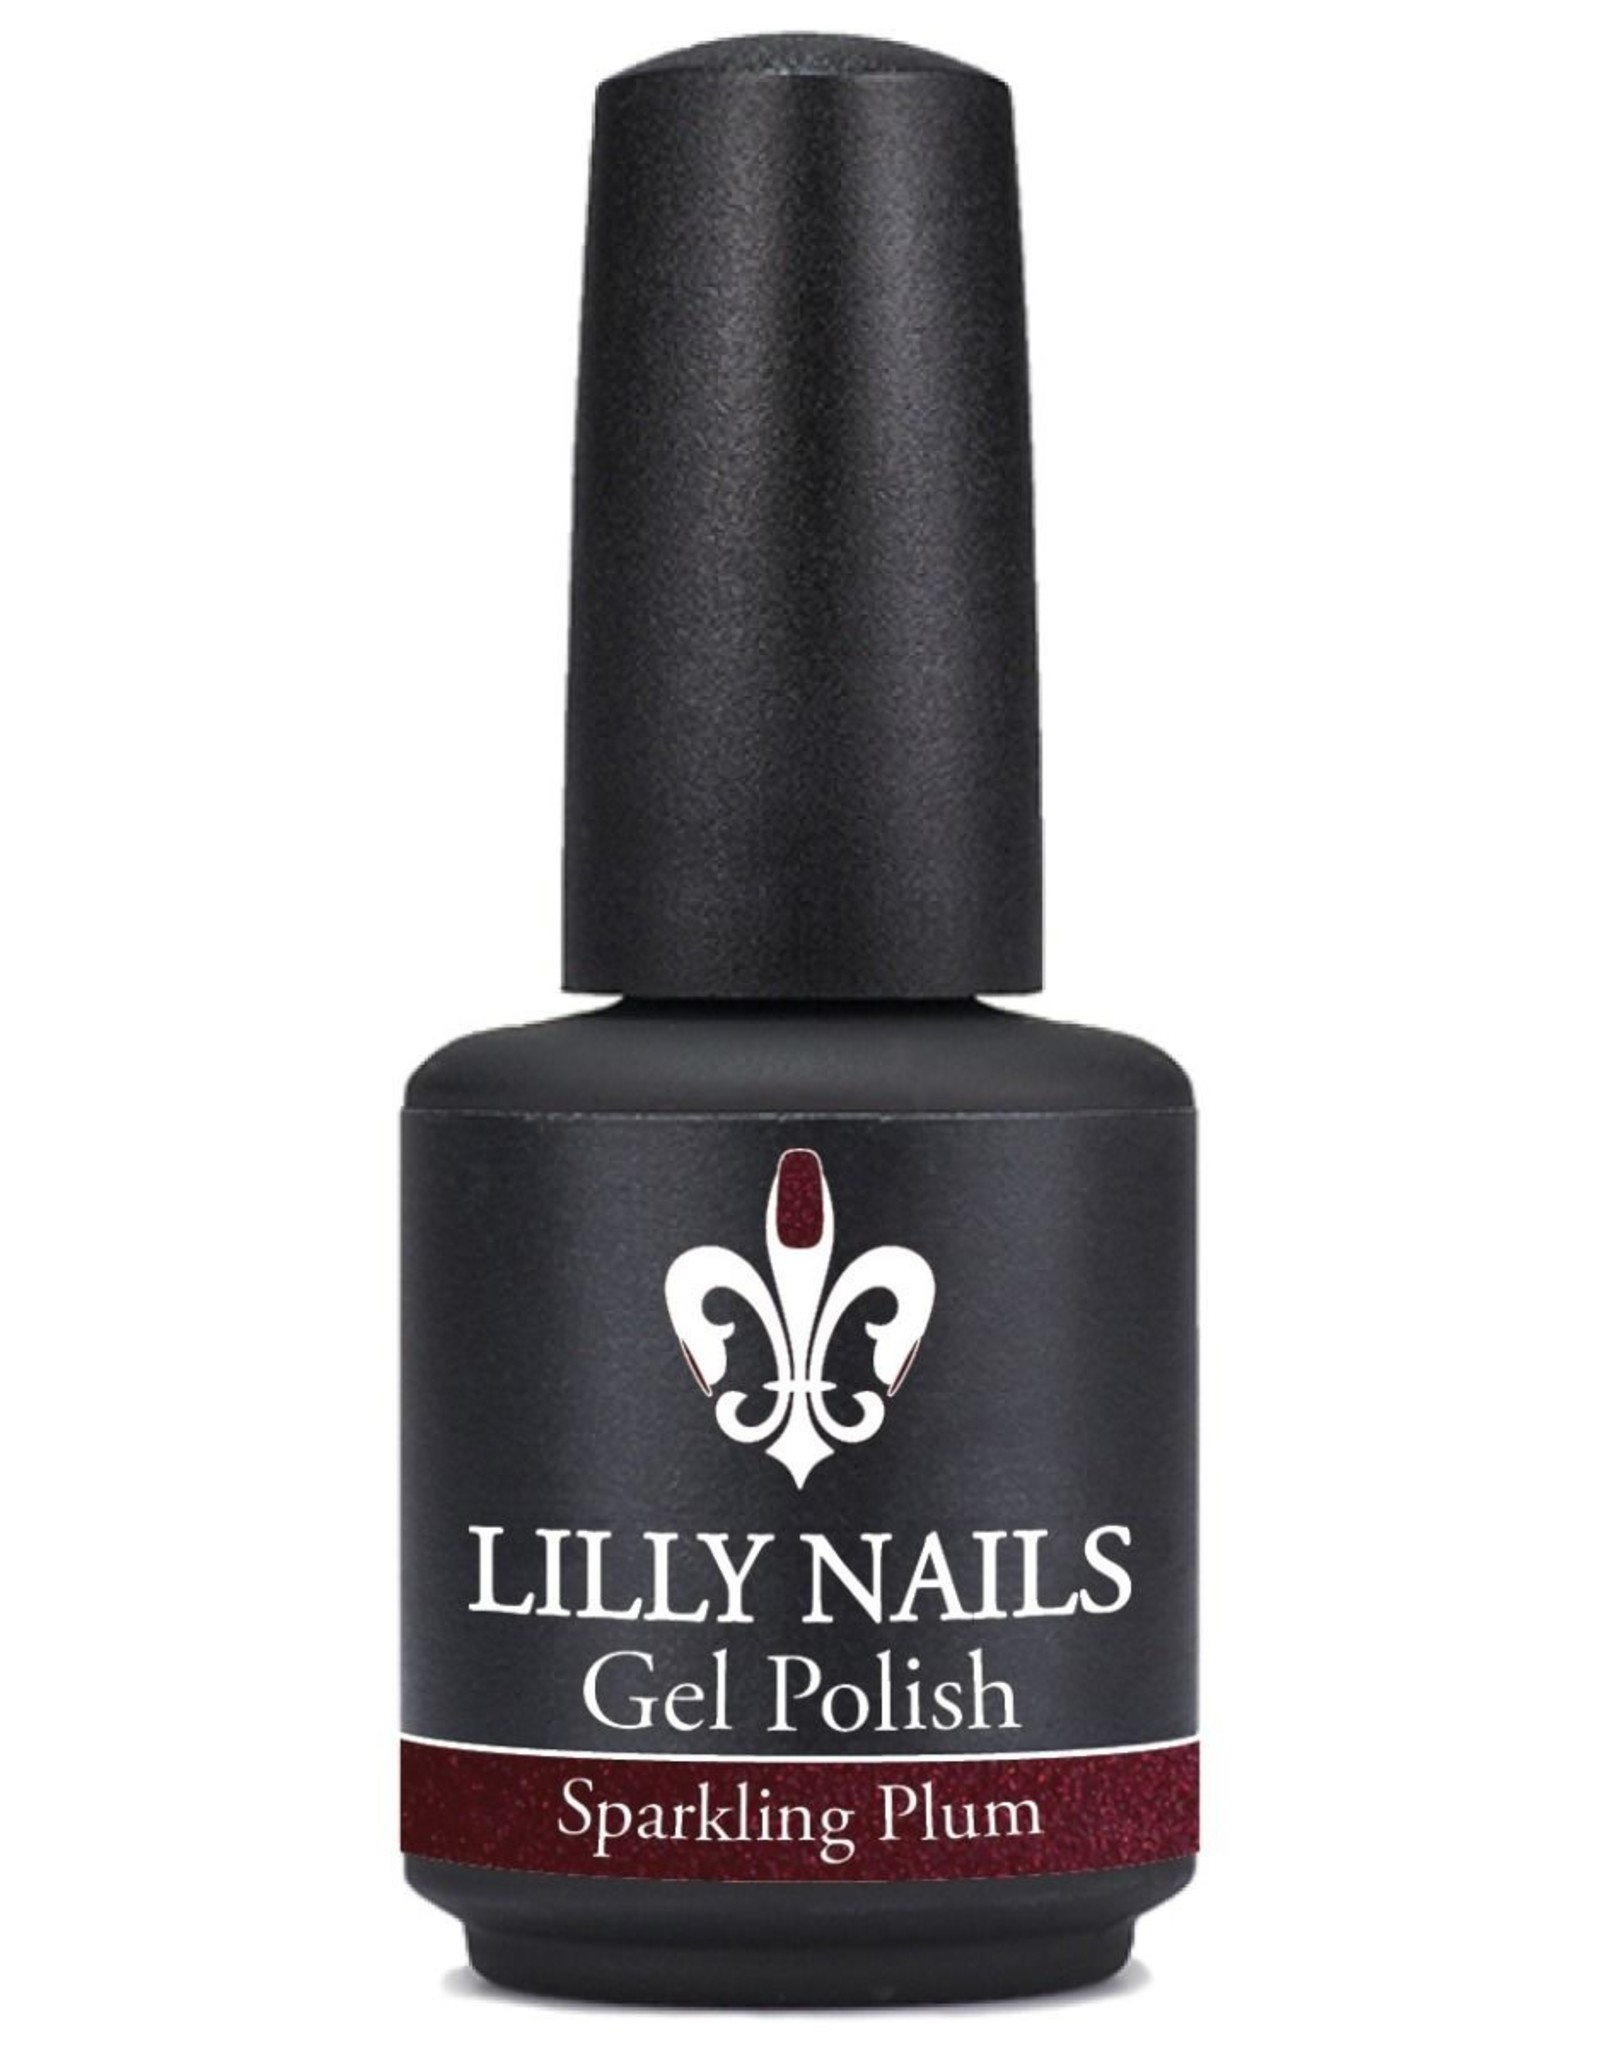 Gel Polish Sparkling Plum